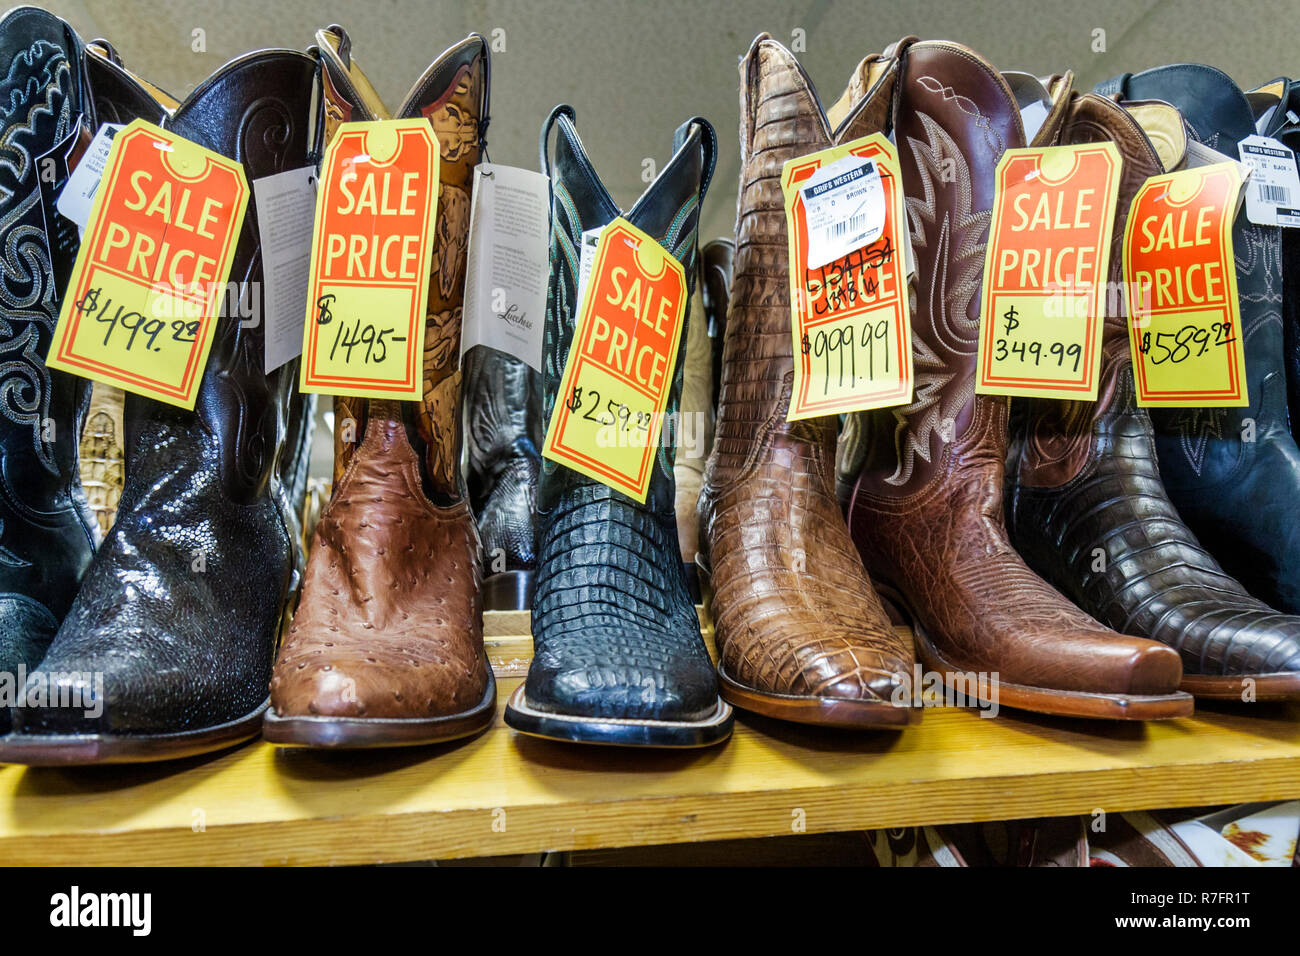 5f708684d Florida Davie equestrian community Grifs Western store business shopping  cowboy boot riding gear footwear leather design style p